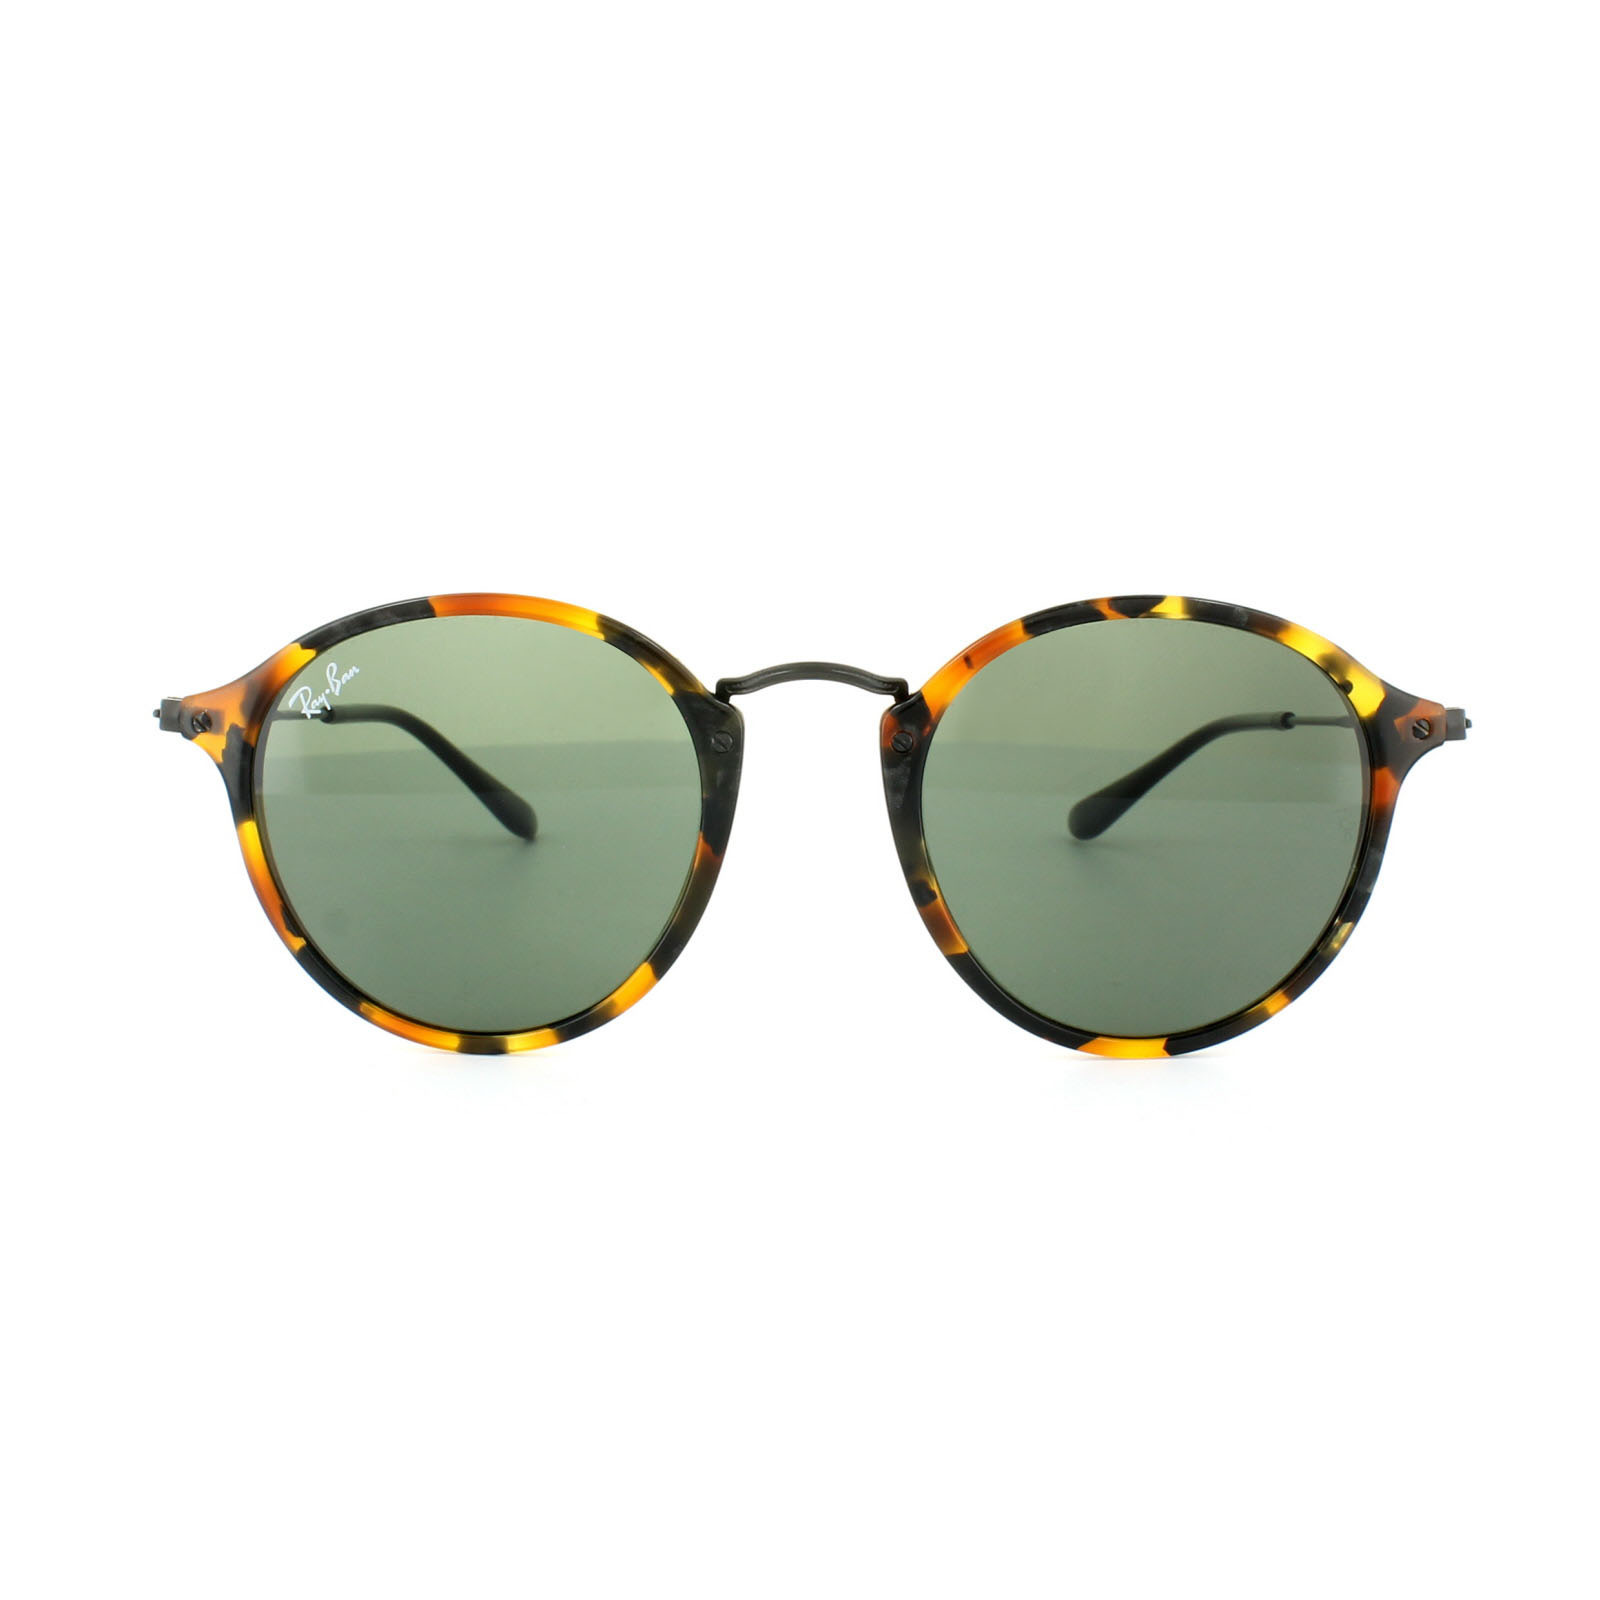 3721dbb72a Sentinel Ray-Ban Sunglasses Round Fleck 2447 1157 Green Spotted Black  Havana 49mm